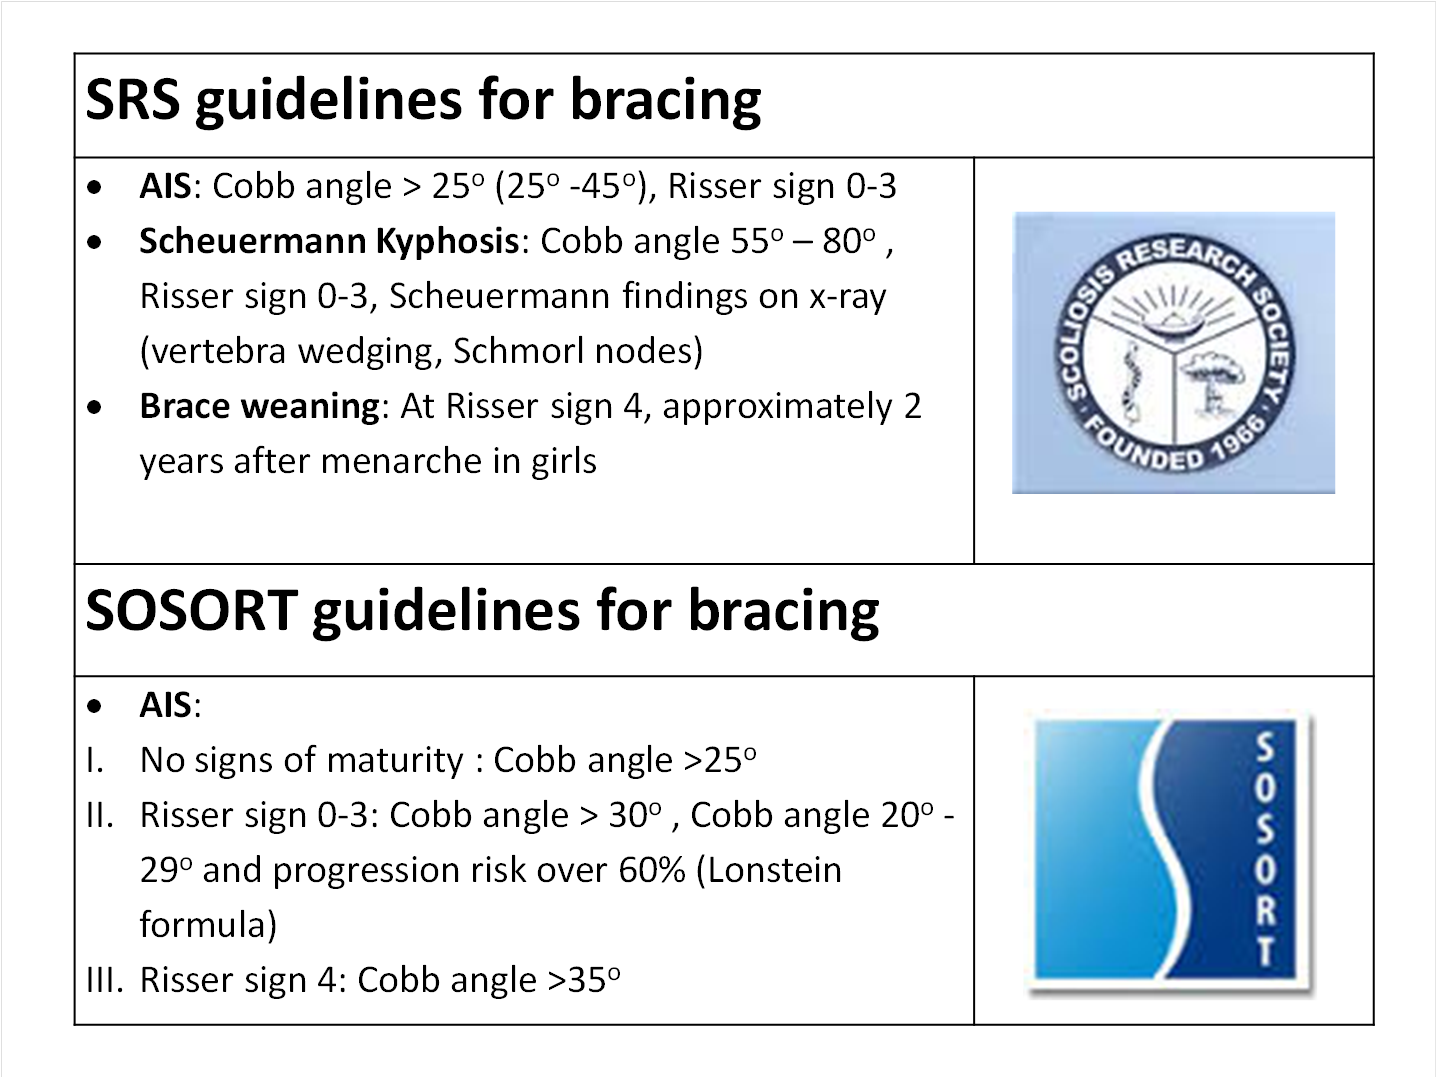 SRS SOSORT guidelines for bracing